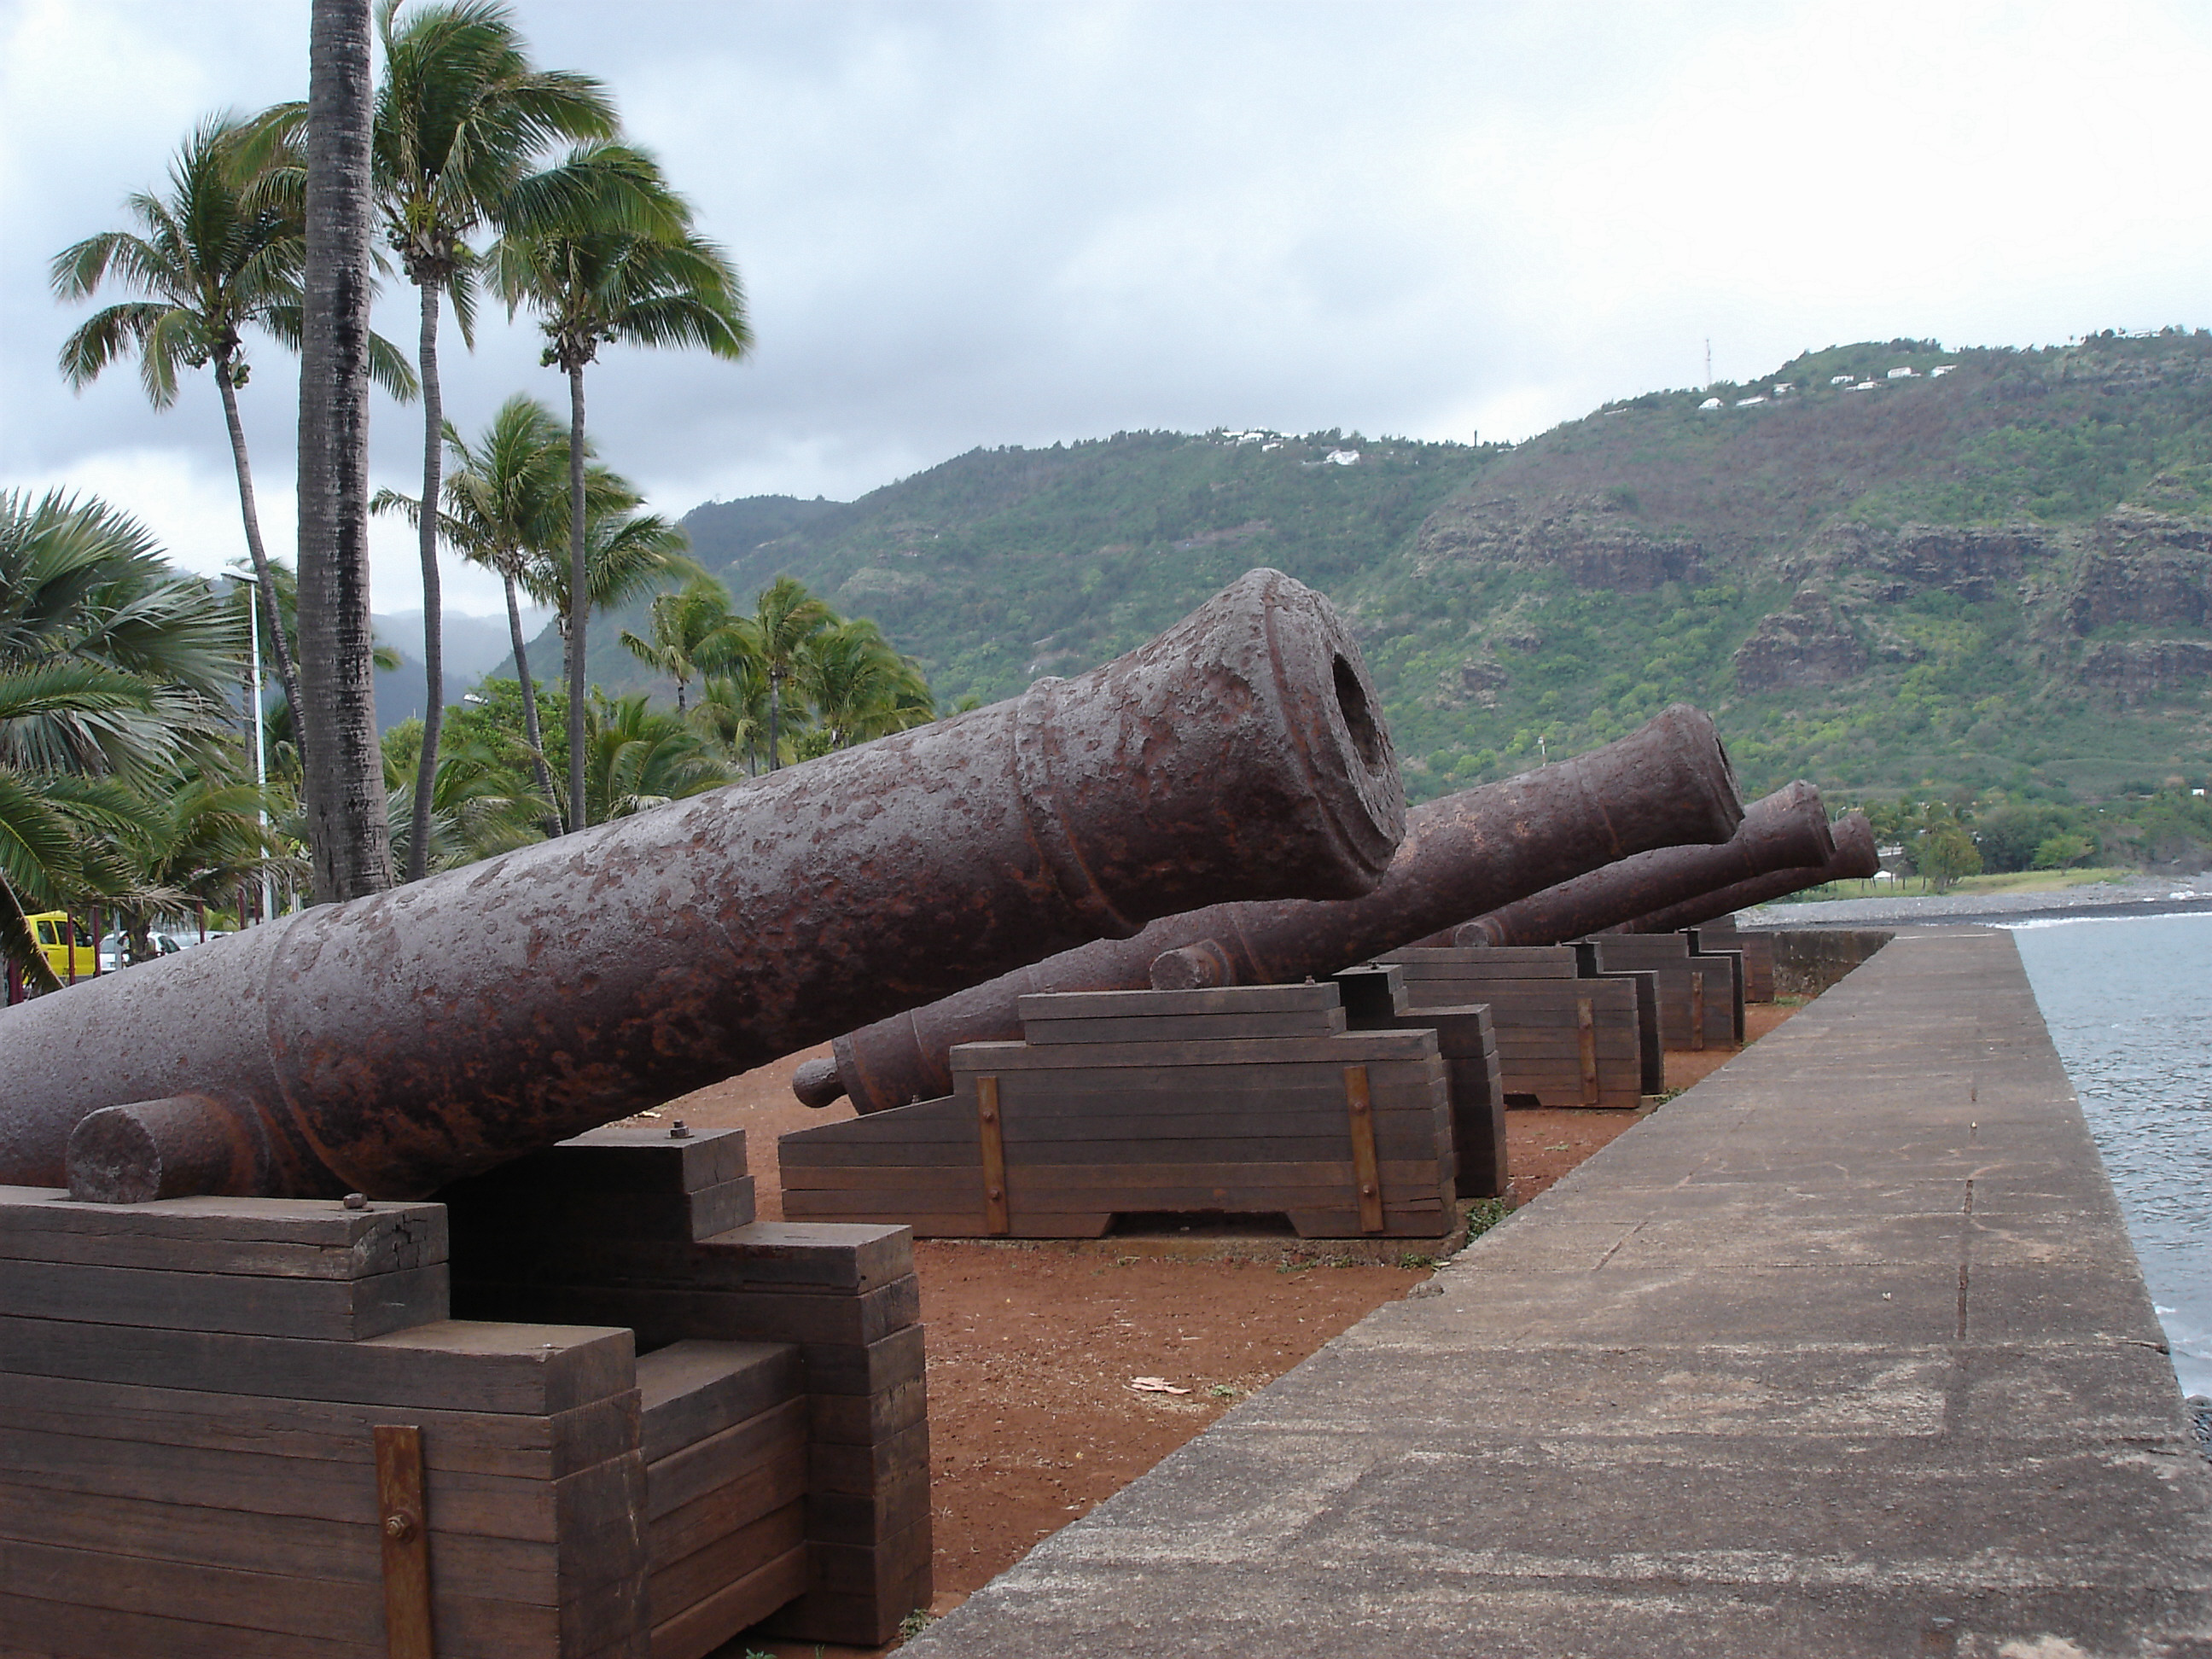 Cannons at Le Barachois, Saint-Denis, Réunion Island